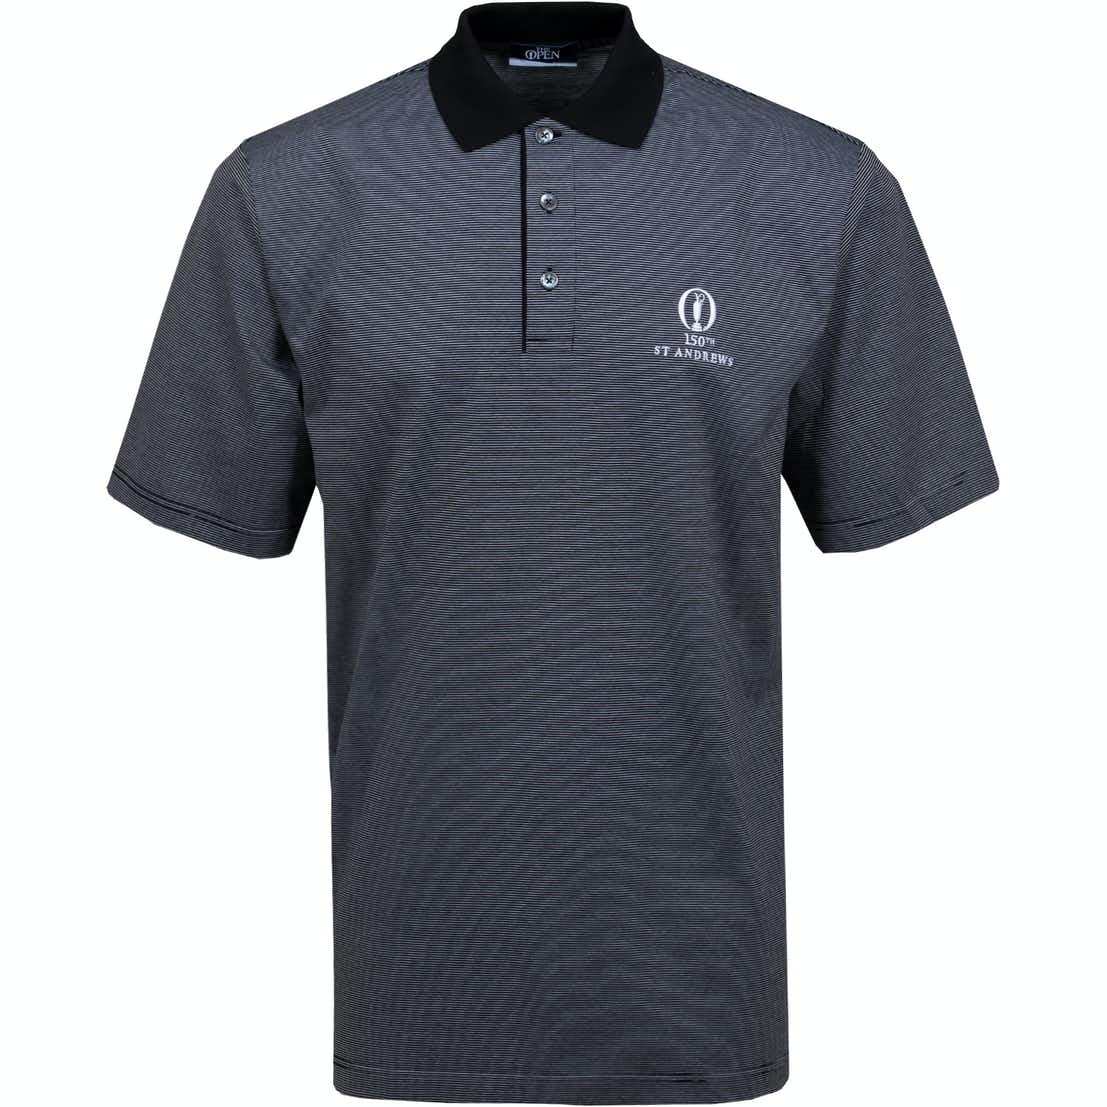 150th St Andrews Patterned Polo Shirt - Black